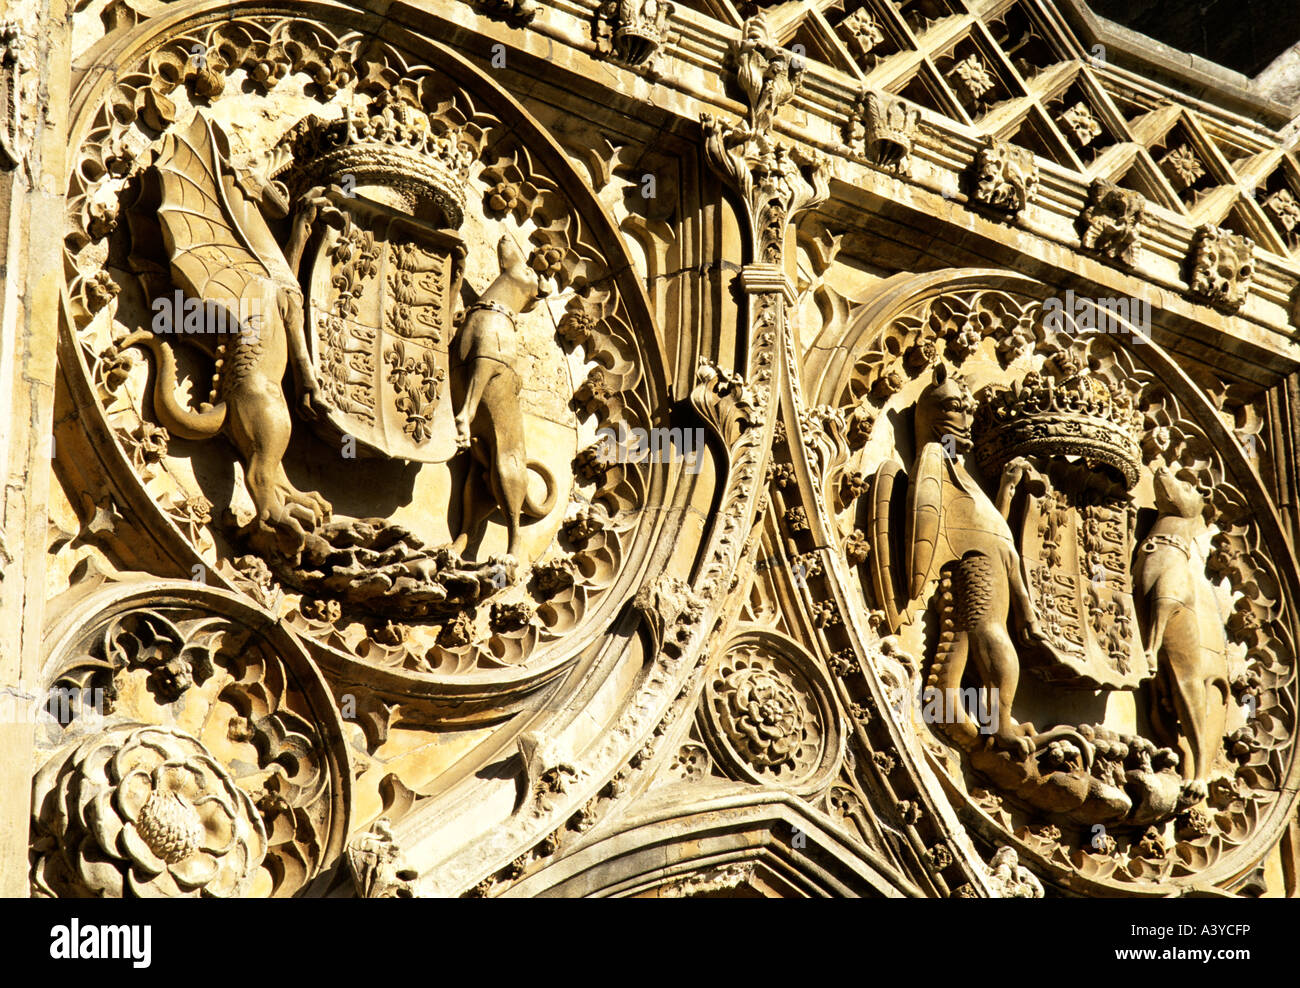 the Royal coat of arms of Henry VII on exterior of King's College Chapel, Cambridge - Stock Image